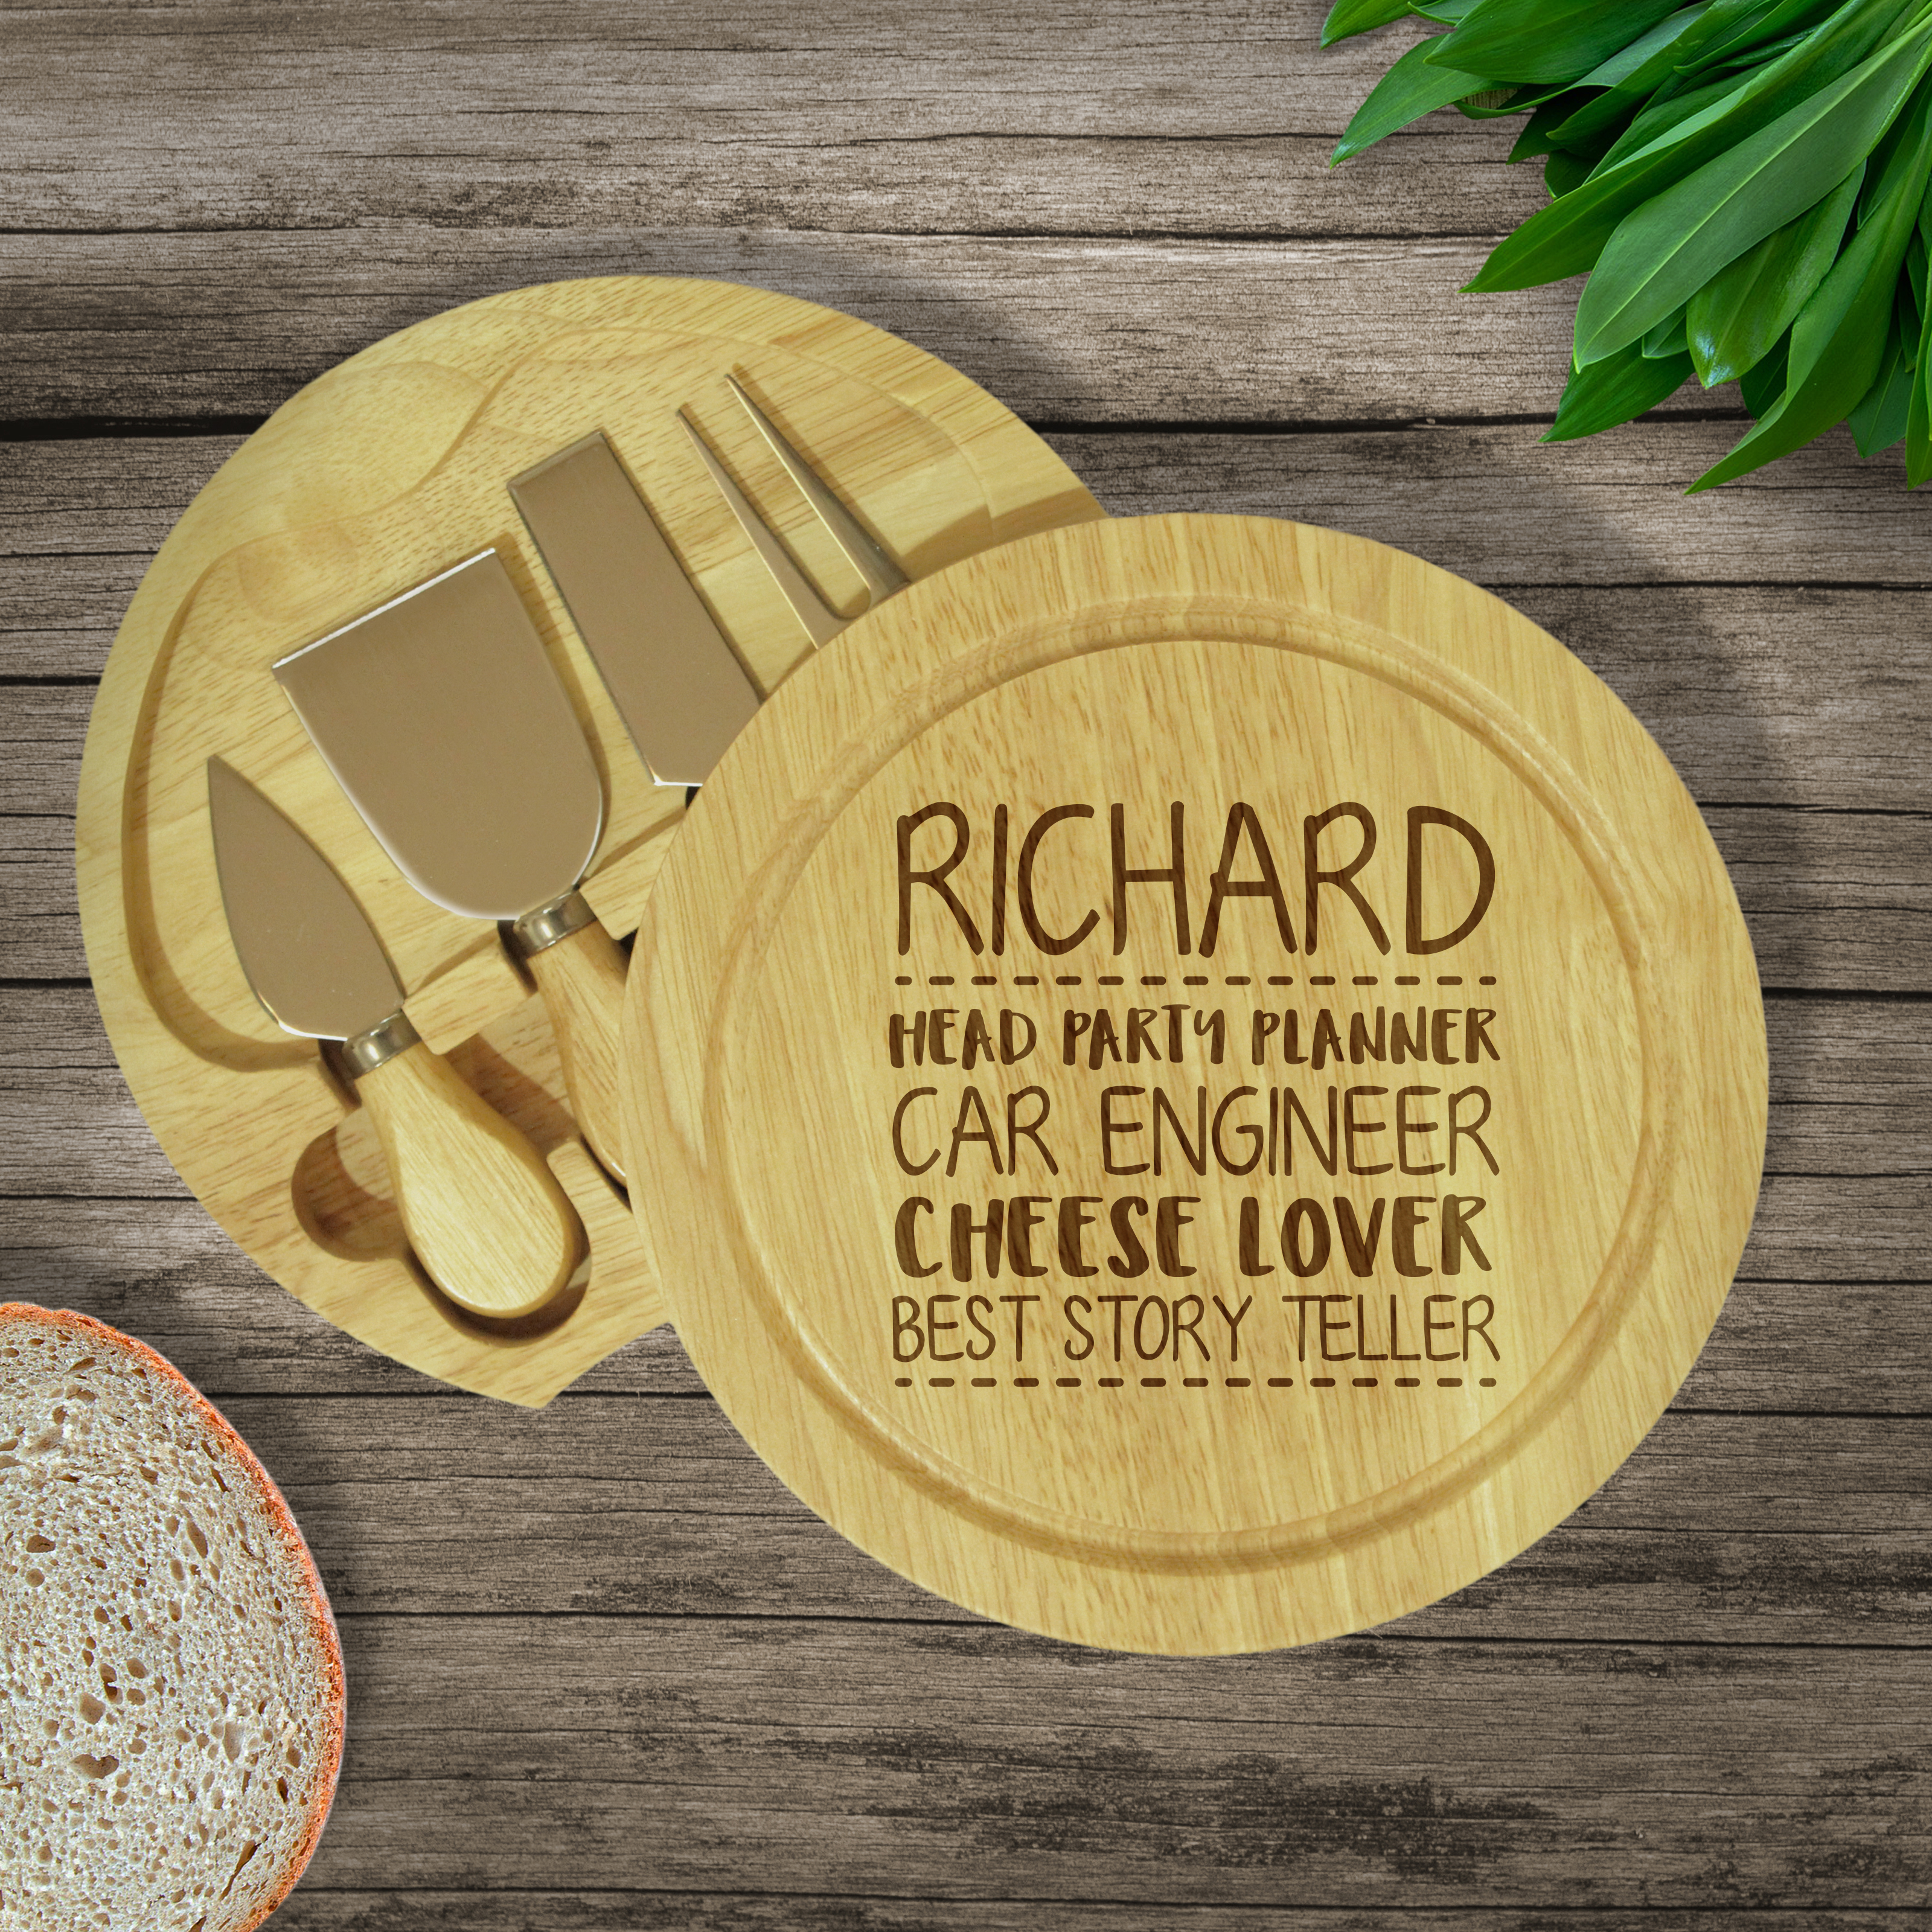 W & G 'No Crackers' Wooden Cheese Board & Knives Set